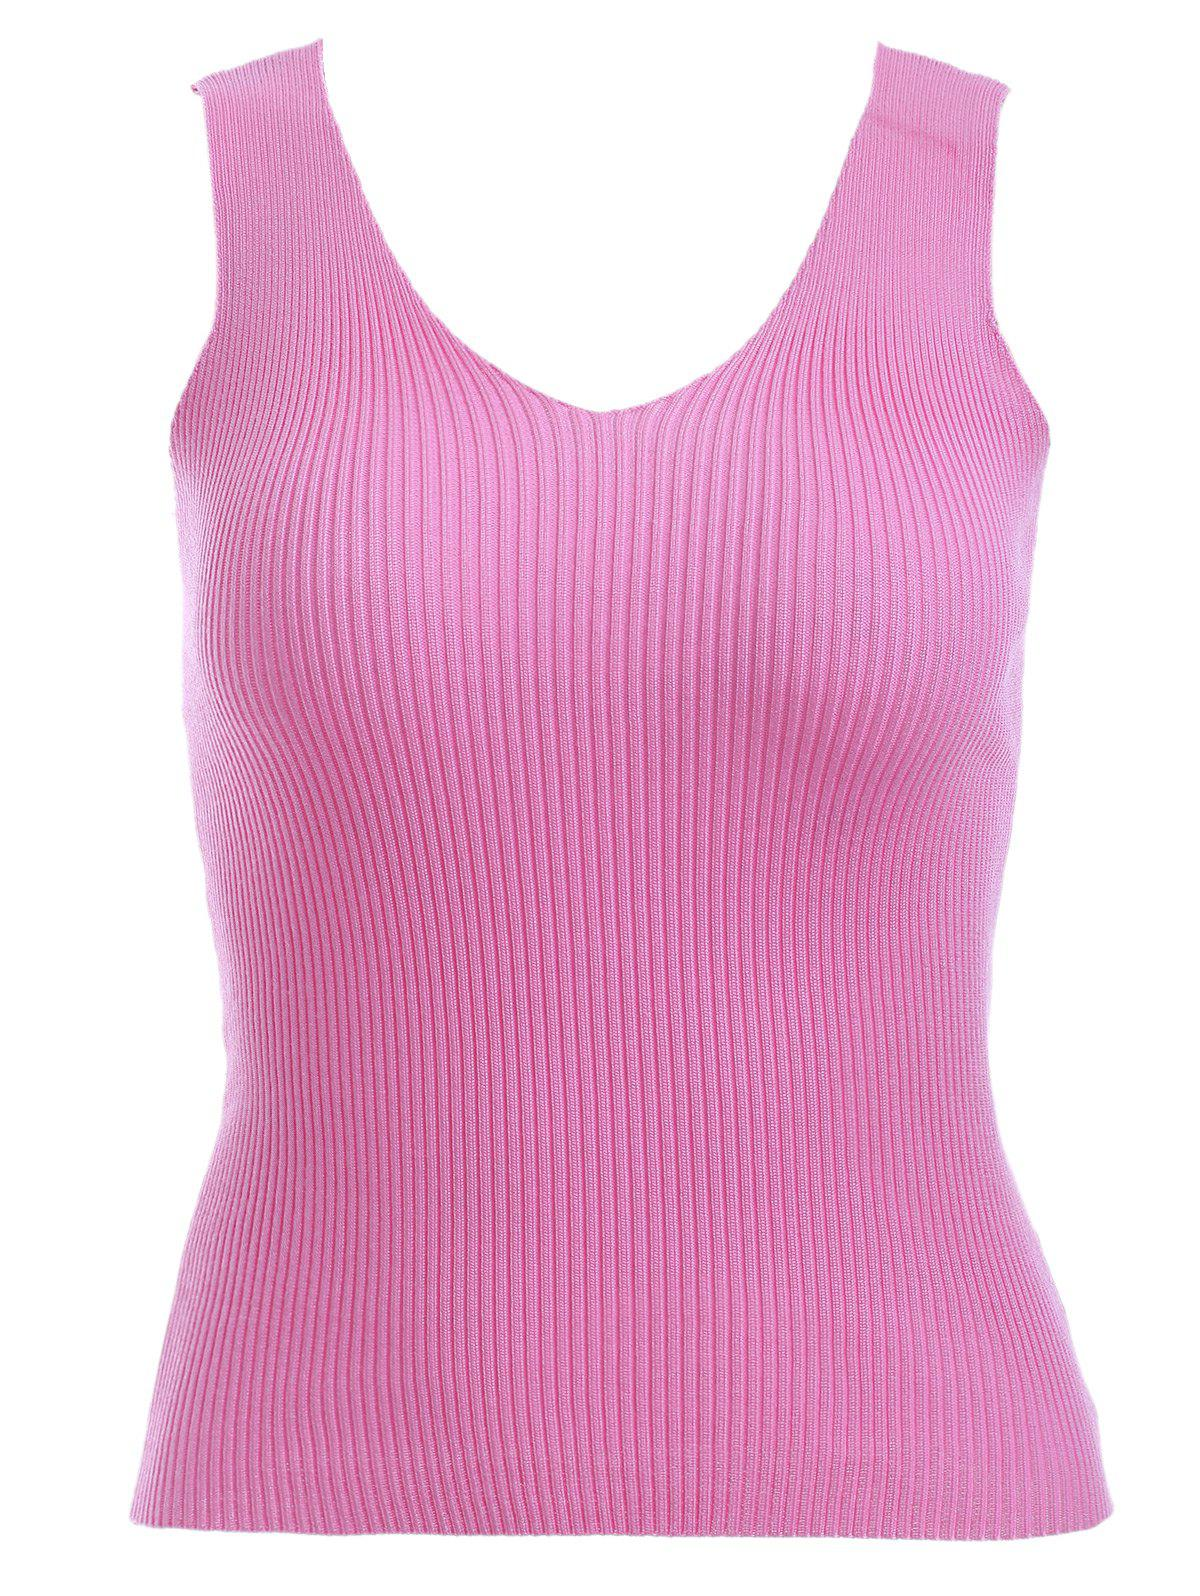 Preppy Pure Color V Neck Knitted Tank Top For Women - ROSE ONE SIZE(FIT SIZE XS TO M)